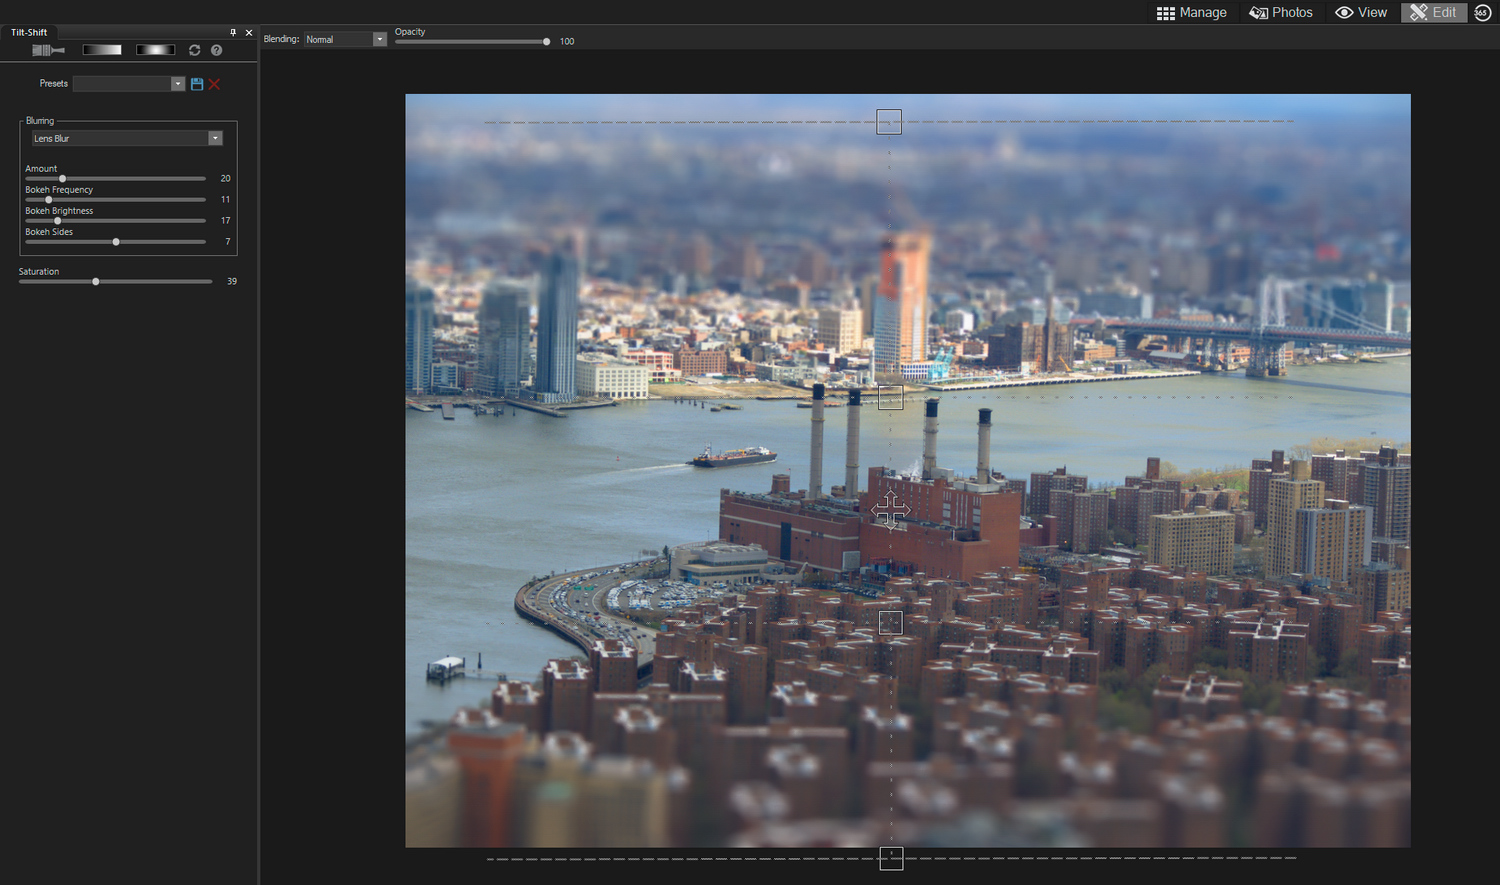 ACDSee Photo Studio Home 2020 - tilt-shift tool